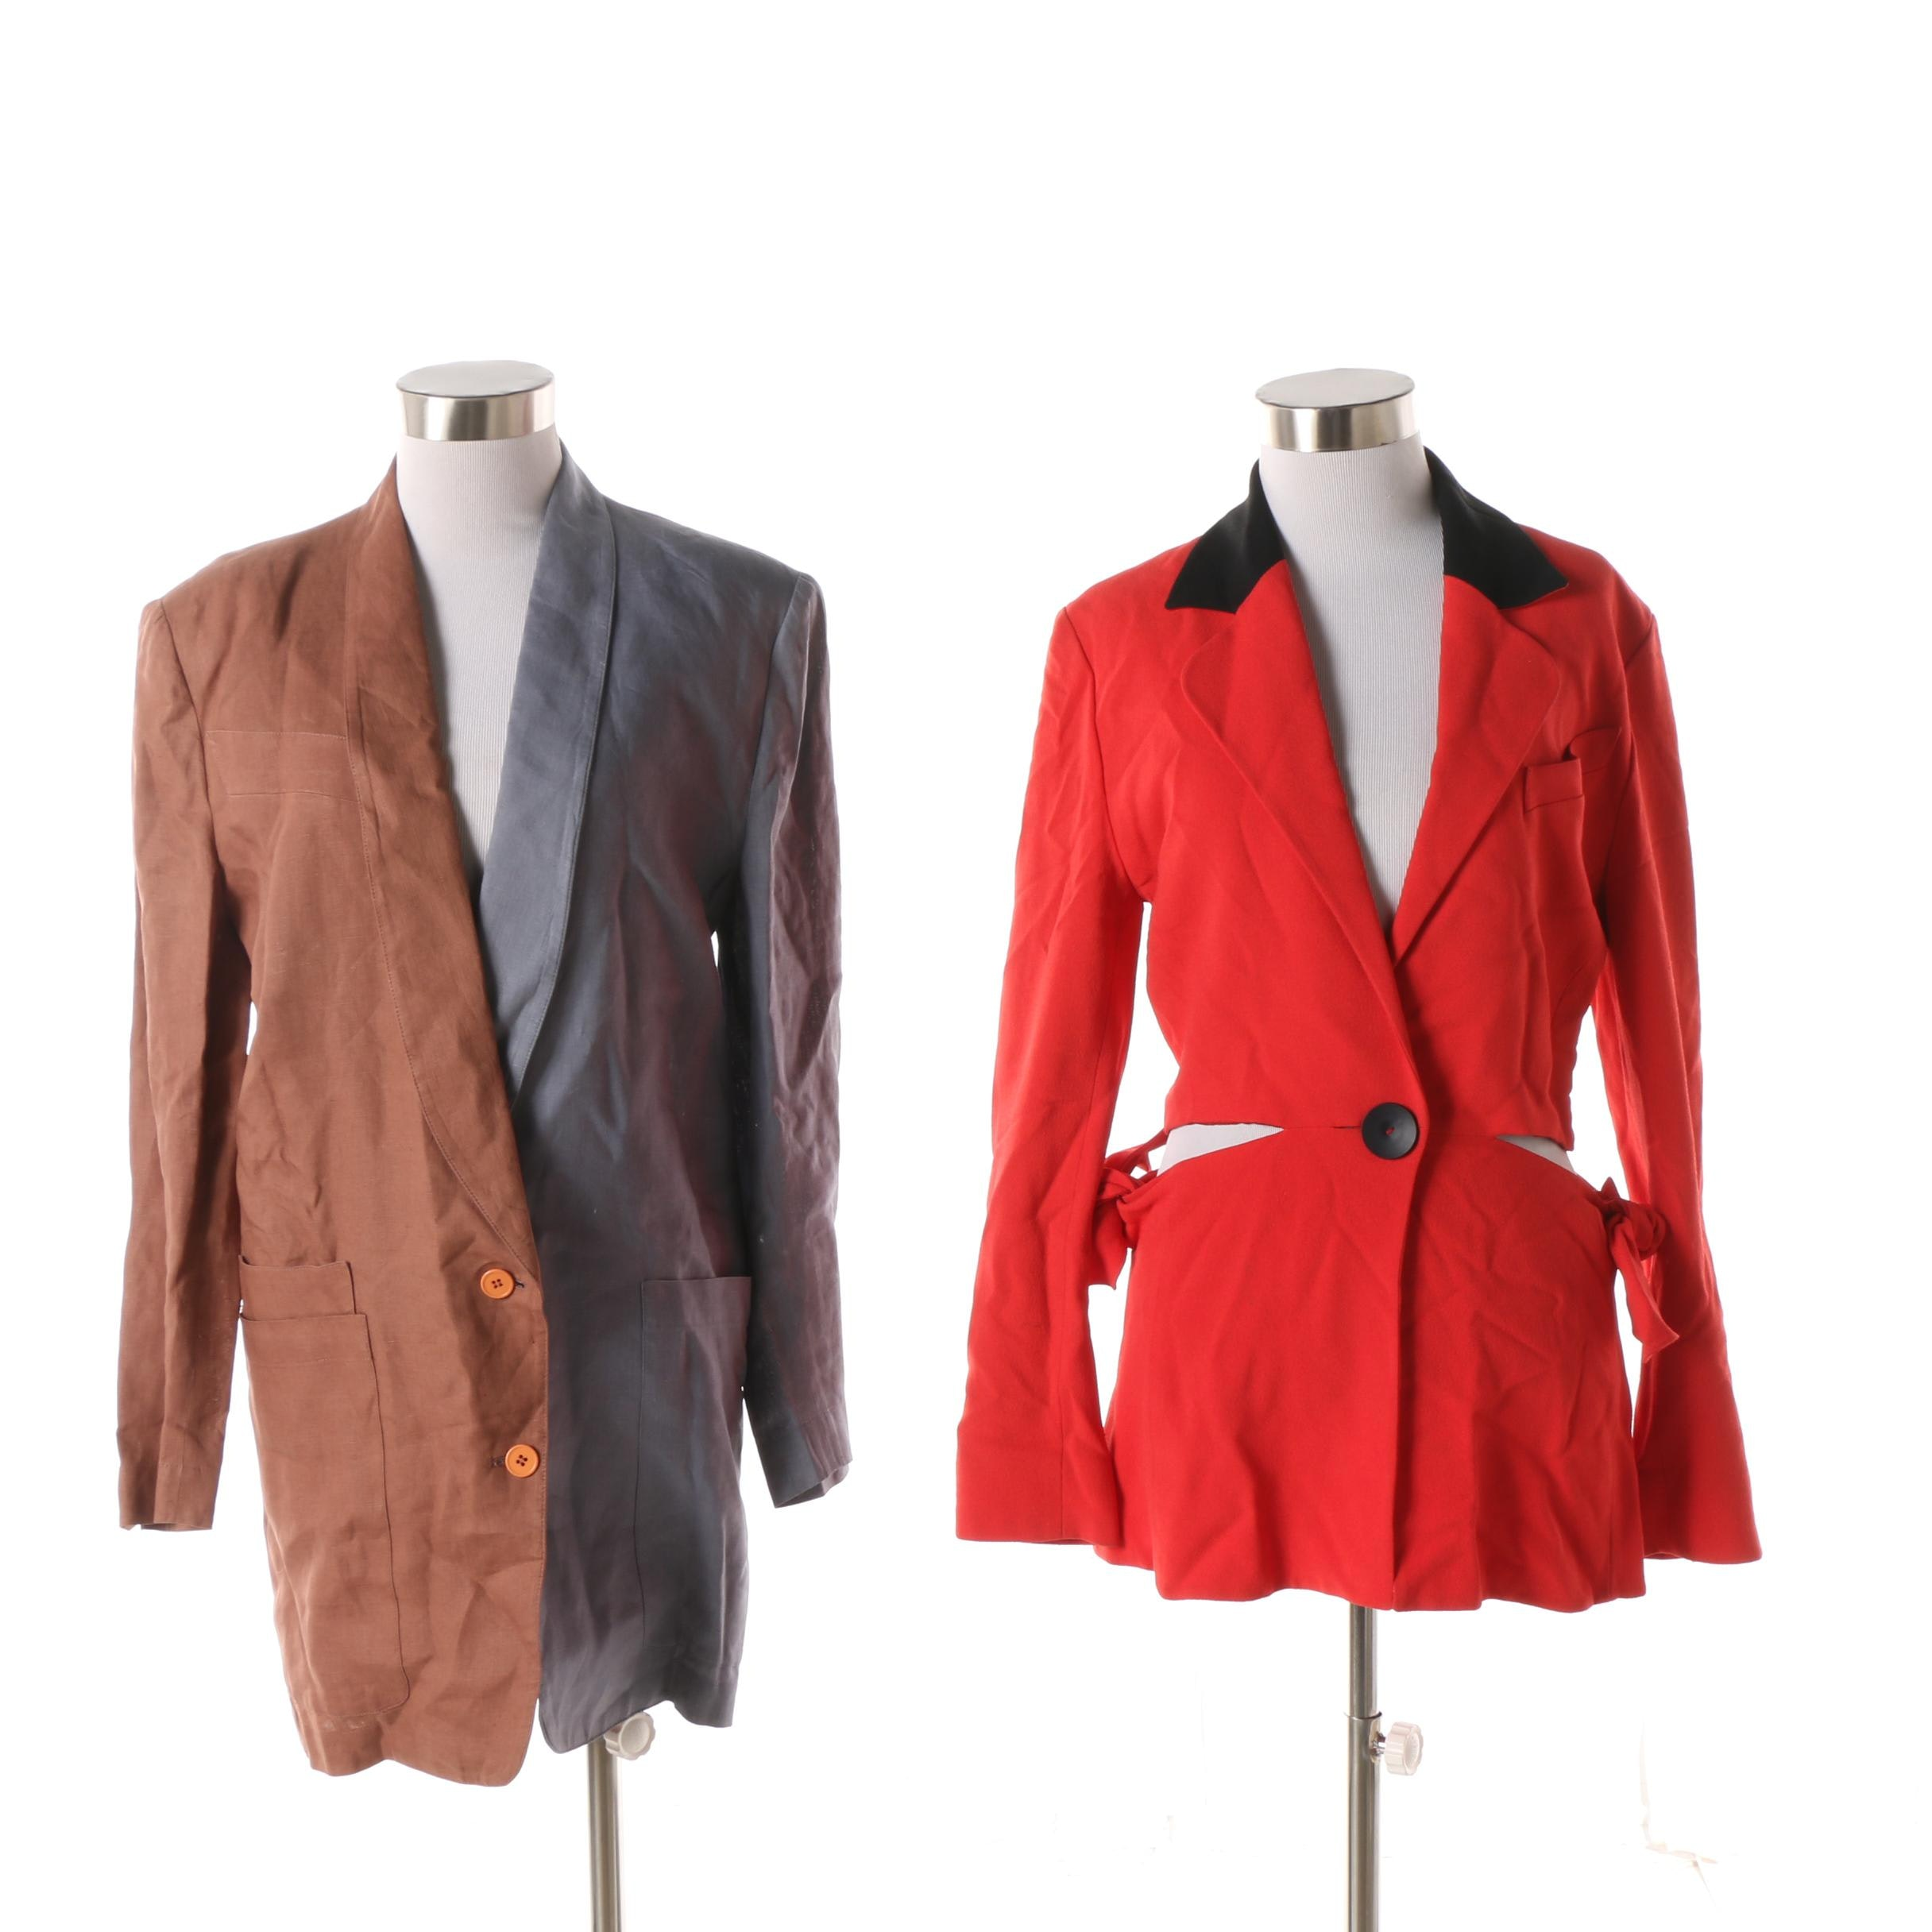 Women's 1980s Vintage Karl Lagerfeld and Claude Montana Suit Jackets